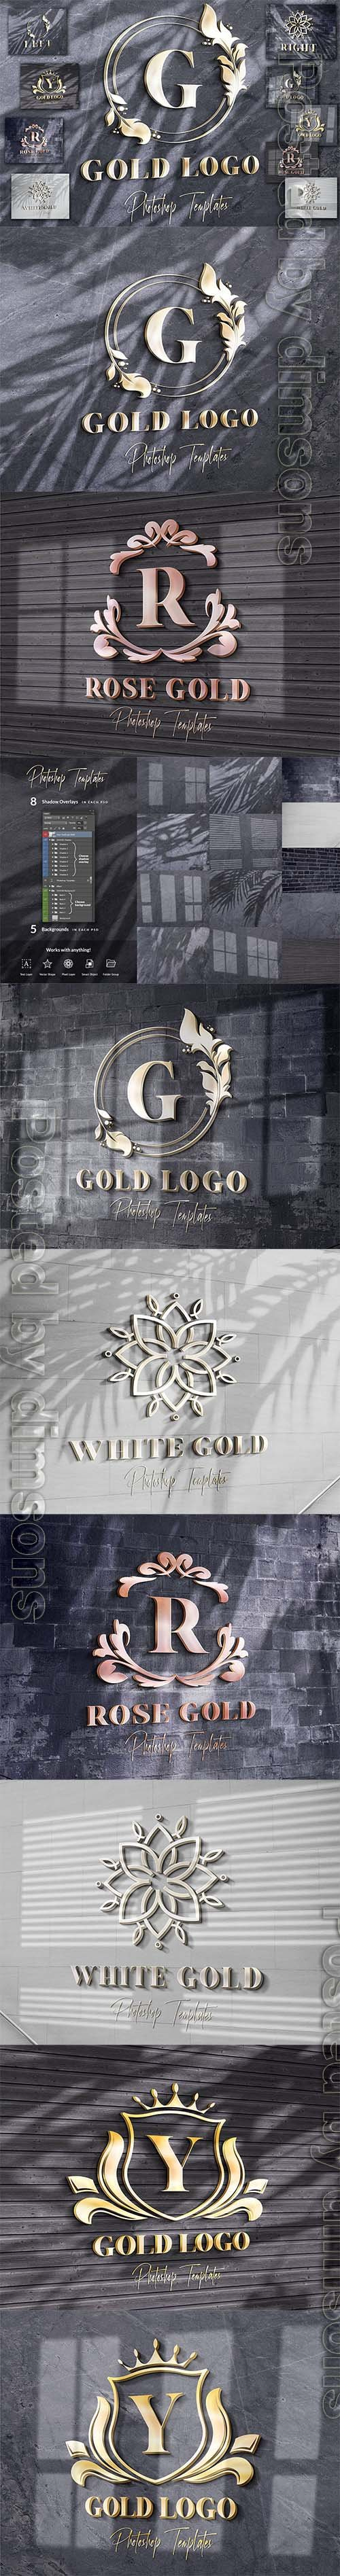 Gold Text/Logo Wall Mockups